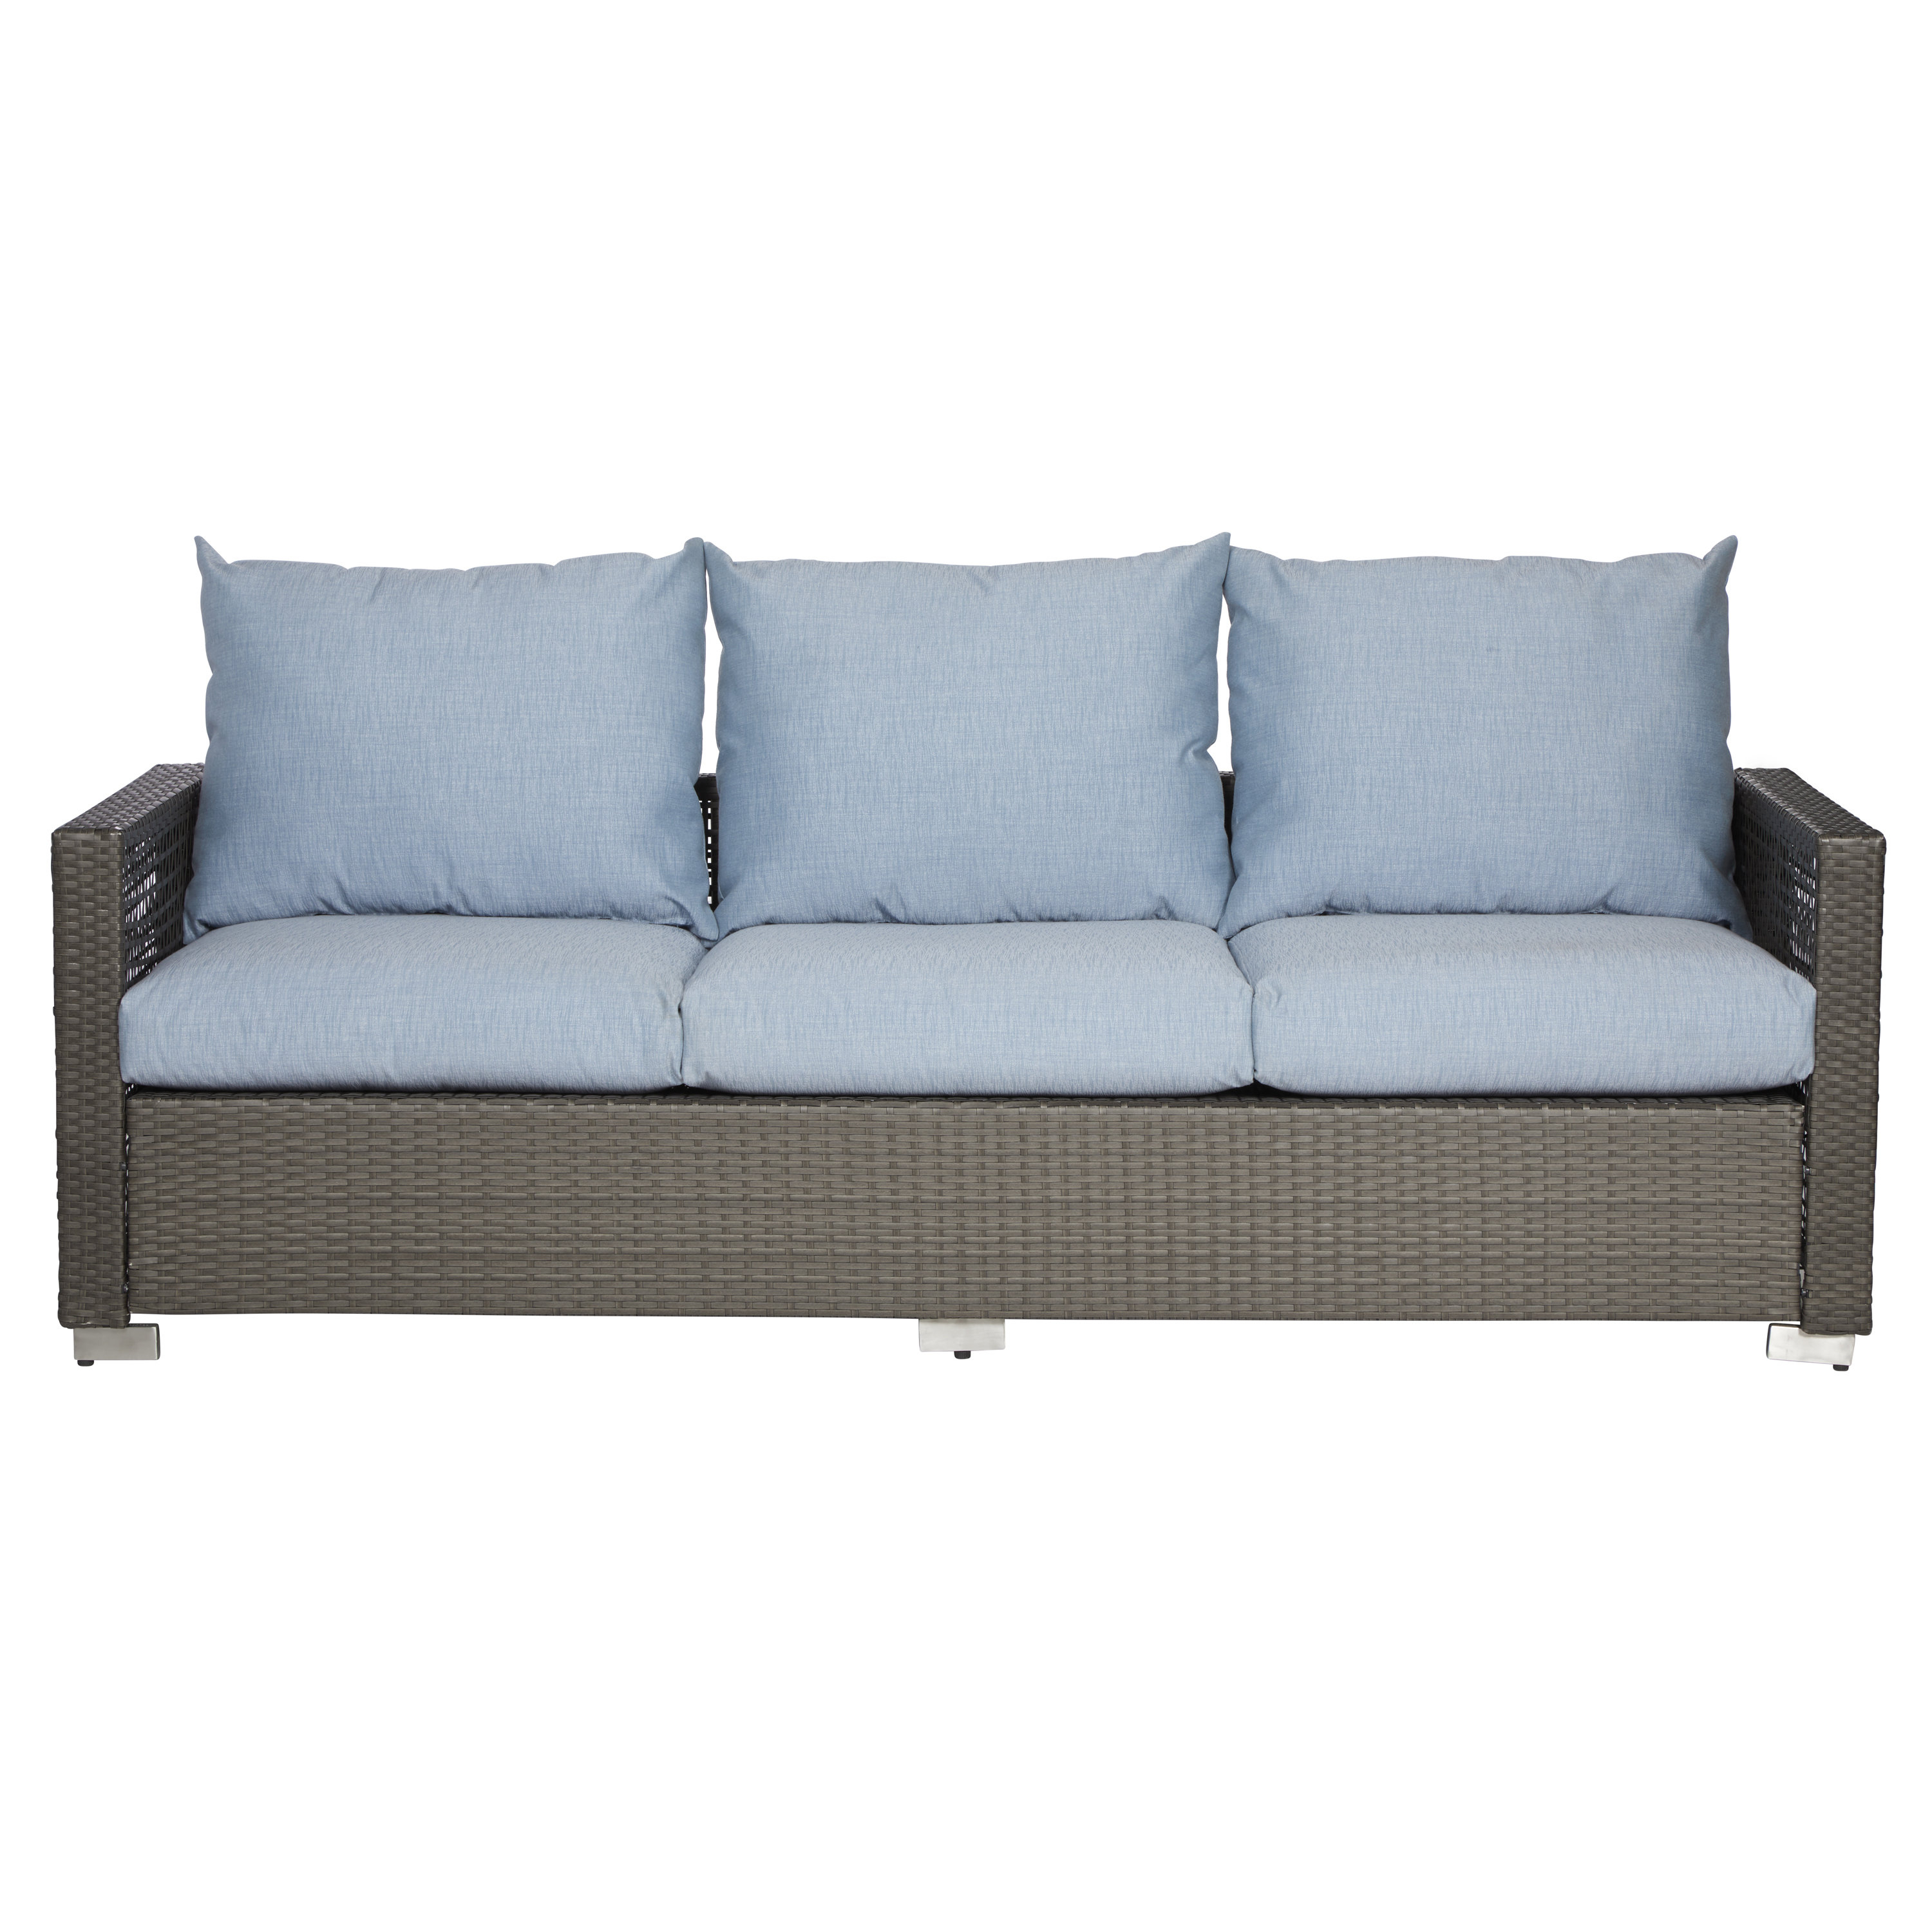 Ivy Bronx Mcmanis Patio Sofa With Cushions Intended For Well Liked Loggins Patio Sofas With Cushions (Gallery 16 of 20)